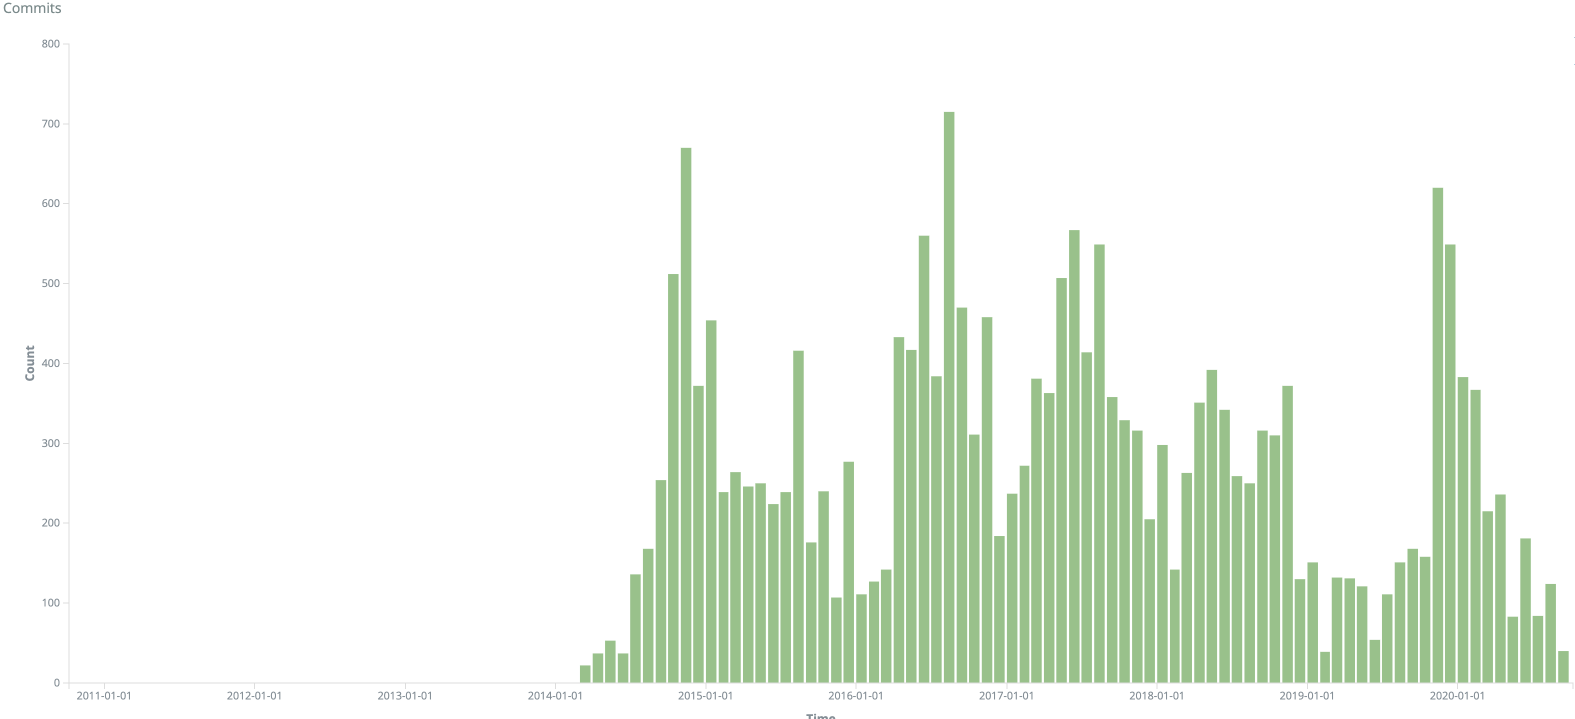 Chart showing commits over time for the Mautic repository